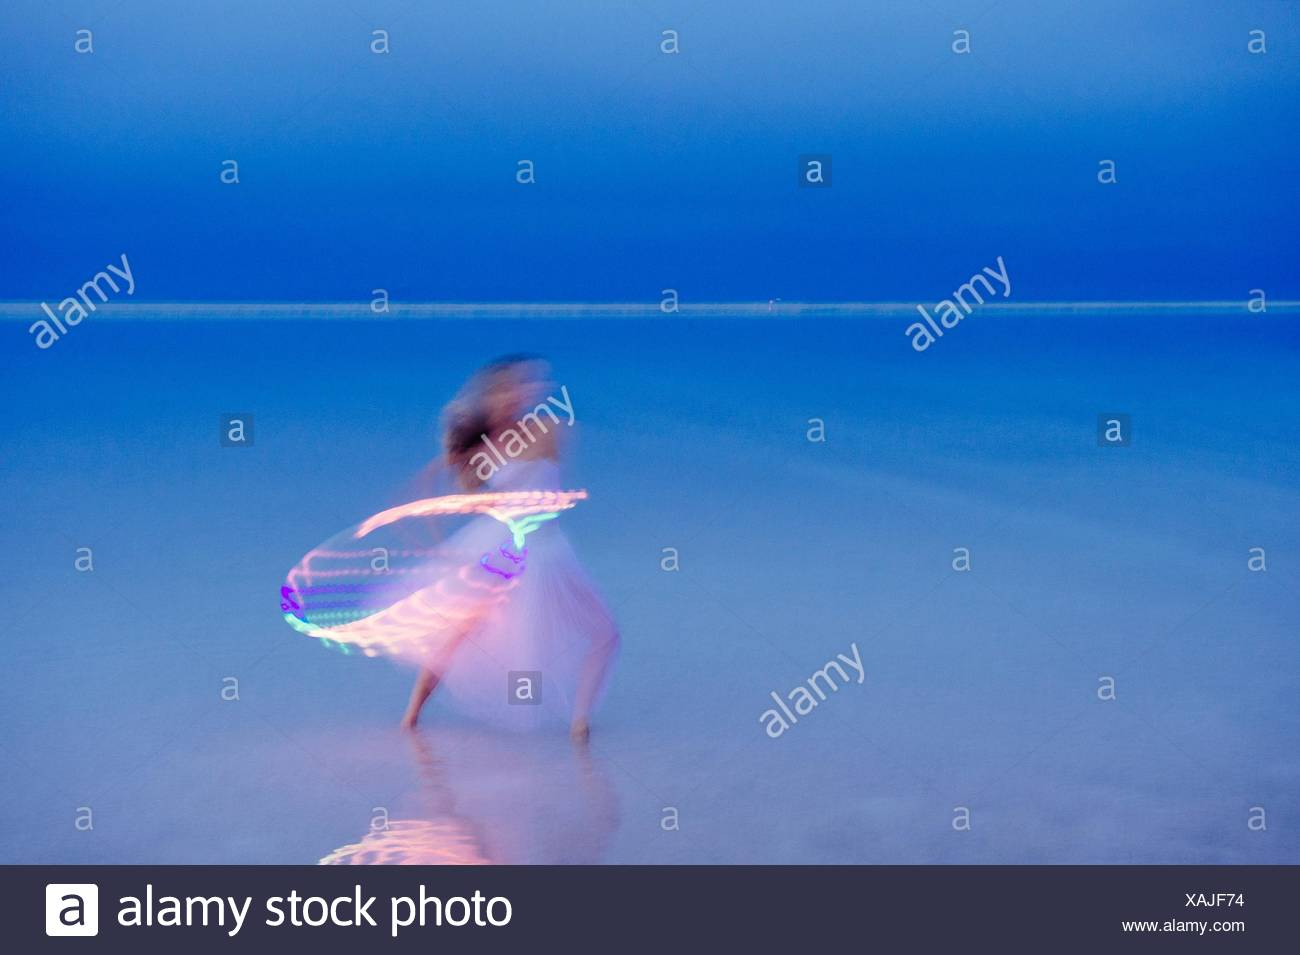 Woman wearing party dress poised with illuminated hoop at dusk - Stock Image